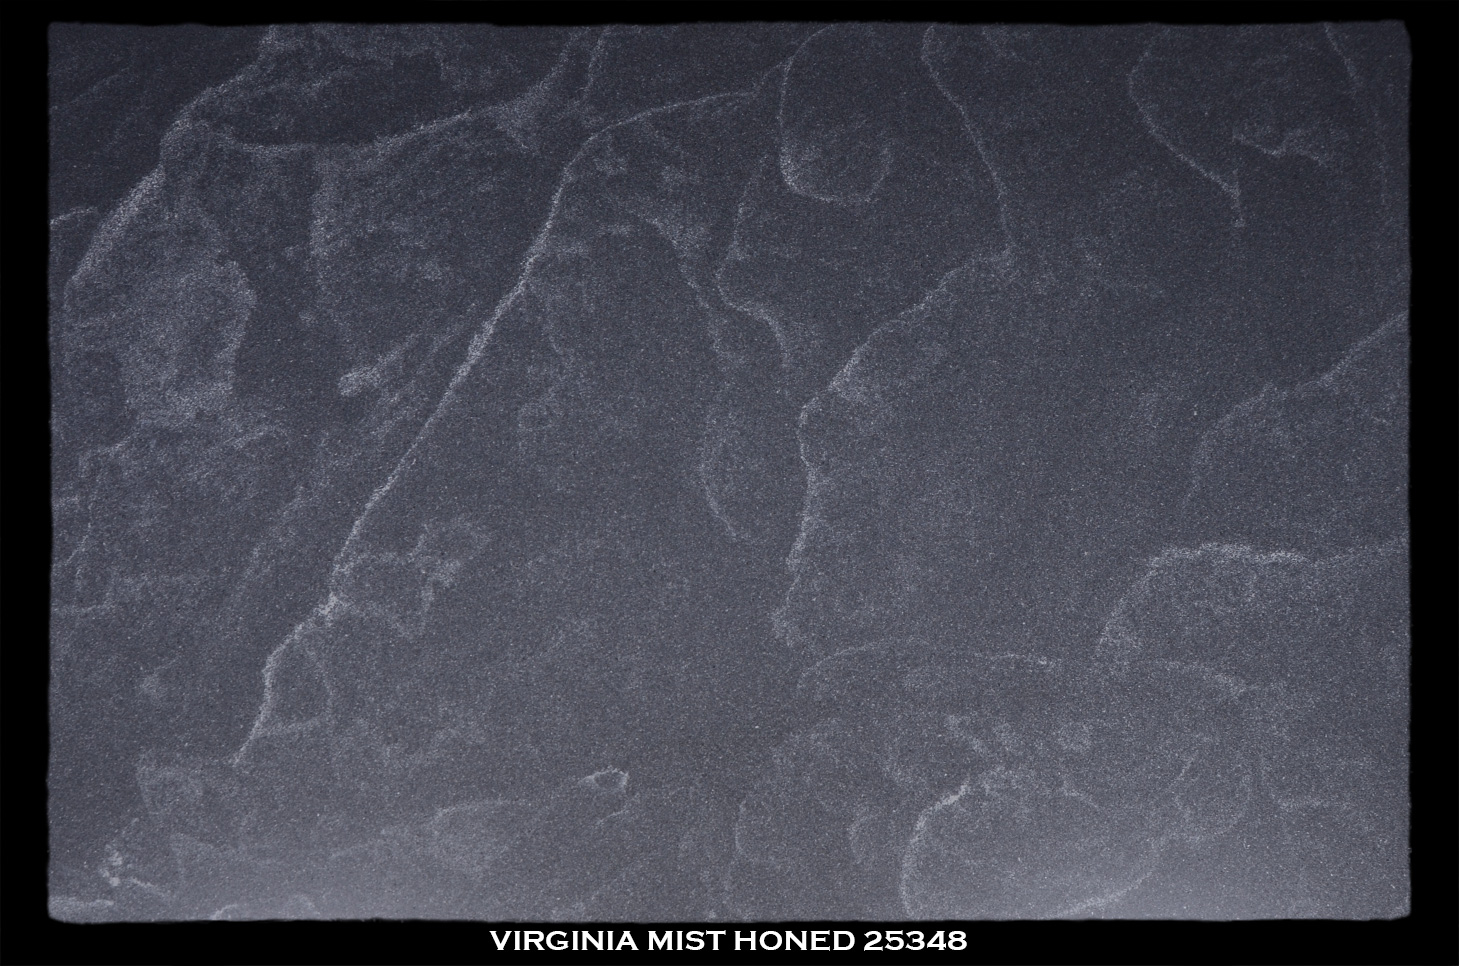 VIRGINIA-MIST-HONED-25348-SLAB